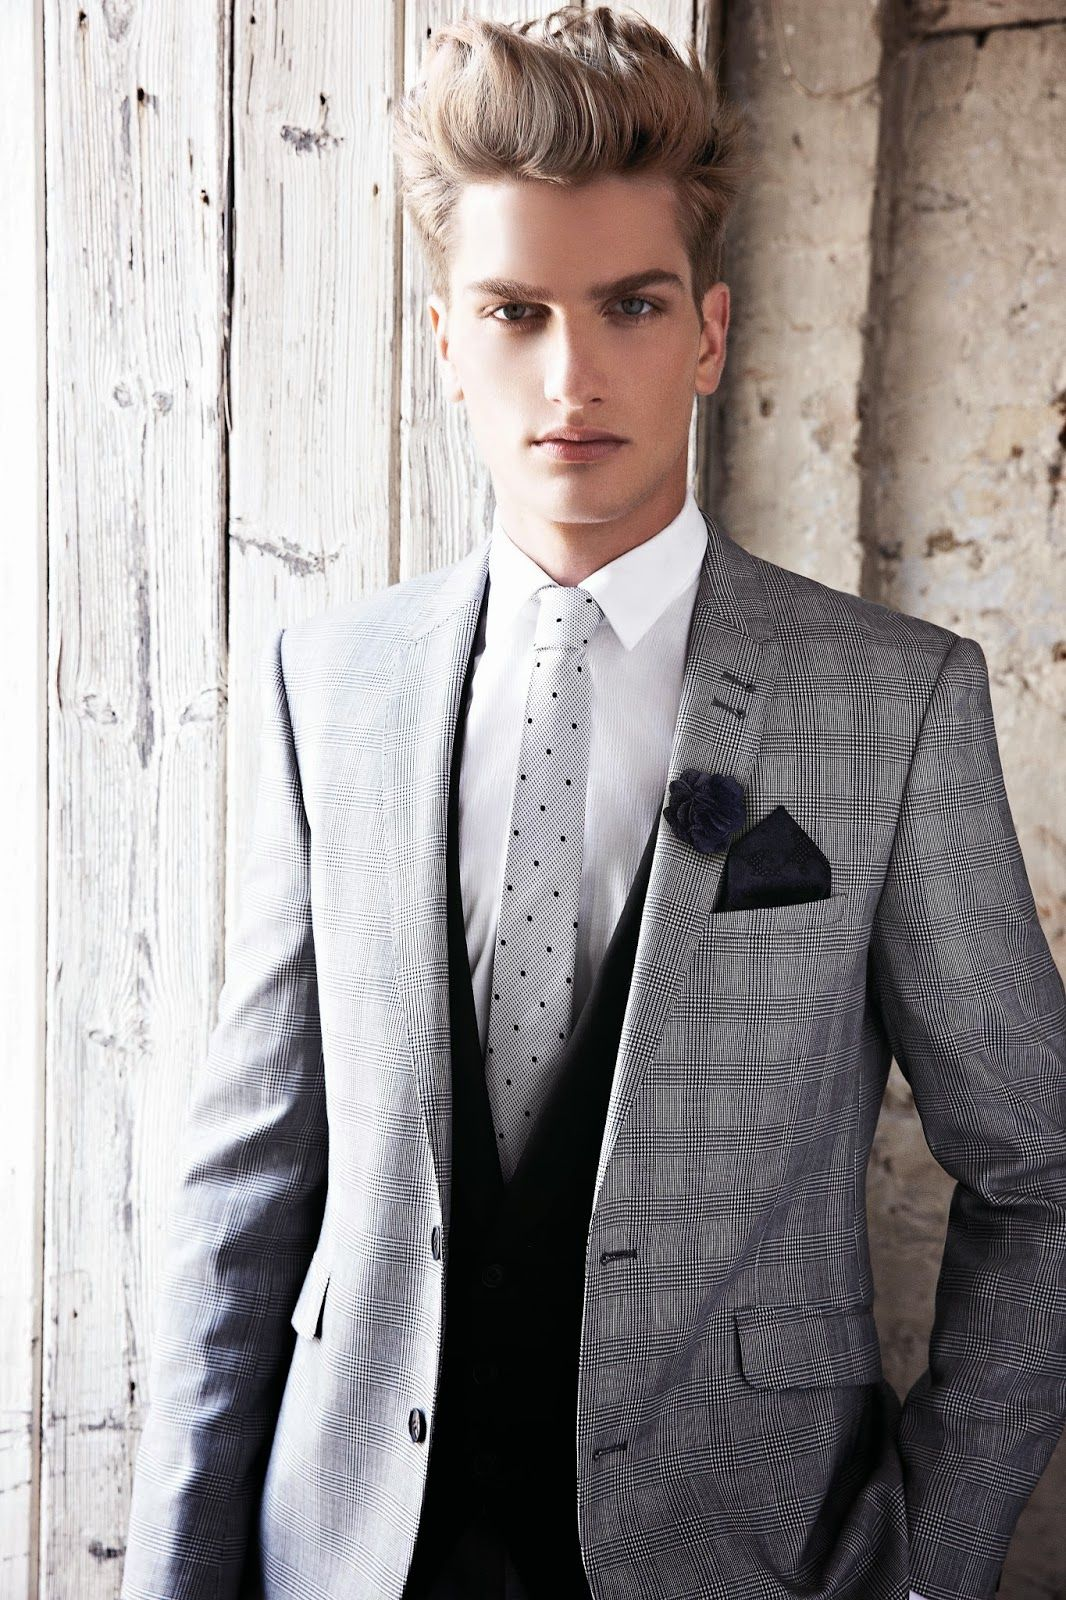 3 piece grey | Wedding suit ideas | Pinterest | Grey, Search and Black